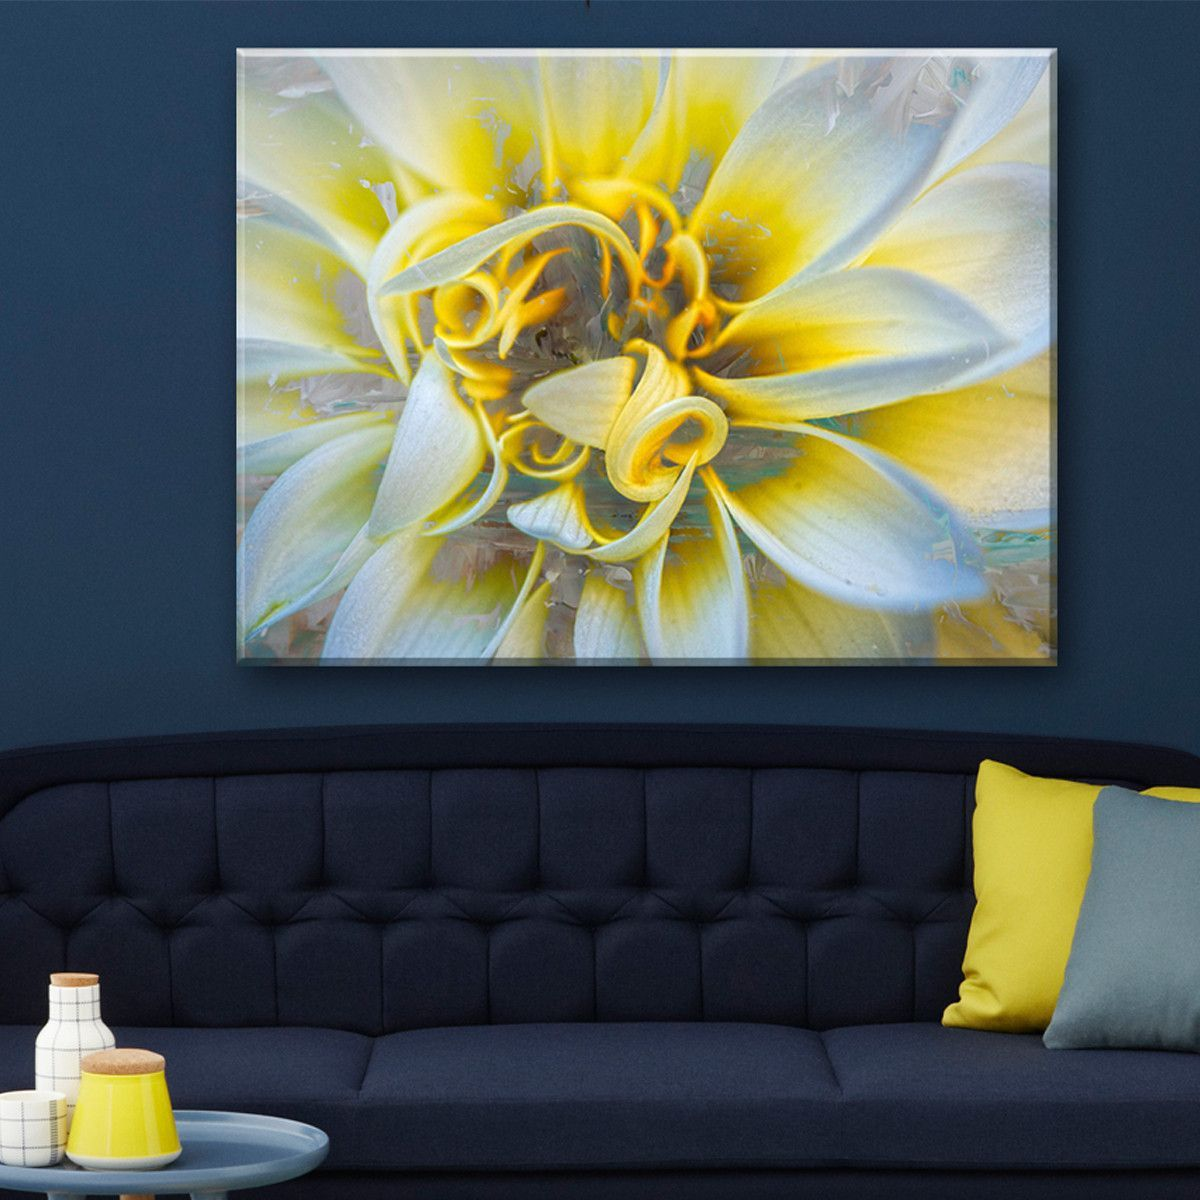 Painted Petals XXXVII\' Canvas Wall Art | Canvases, Walls and Living ...